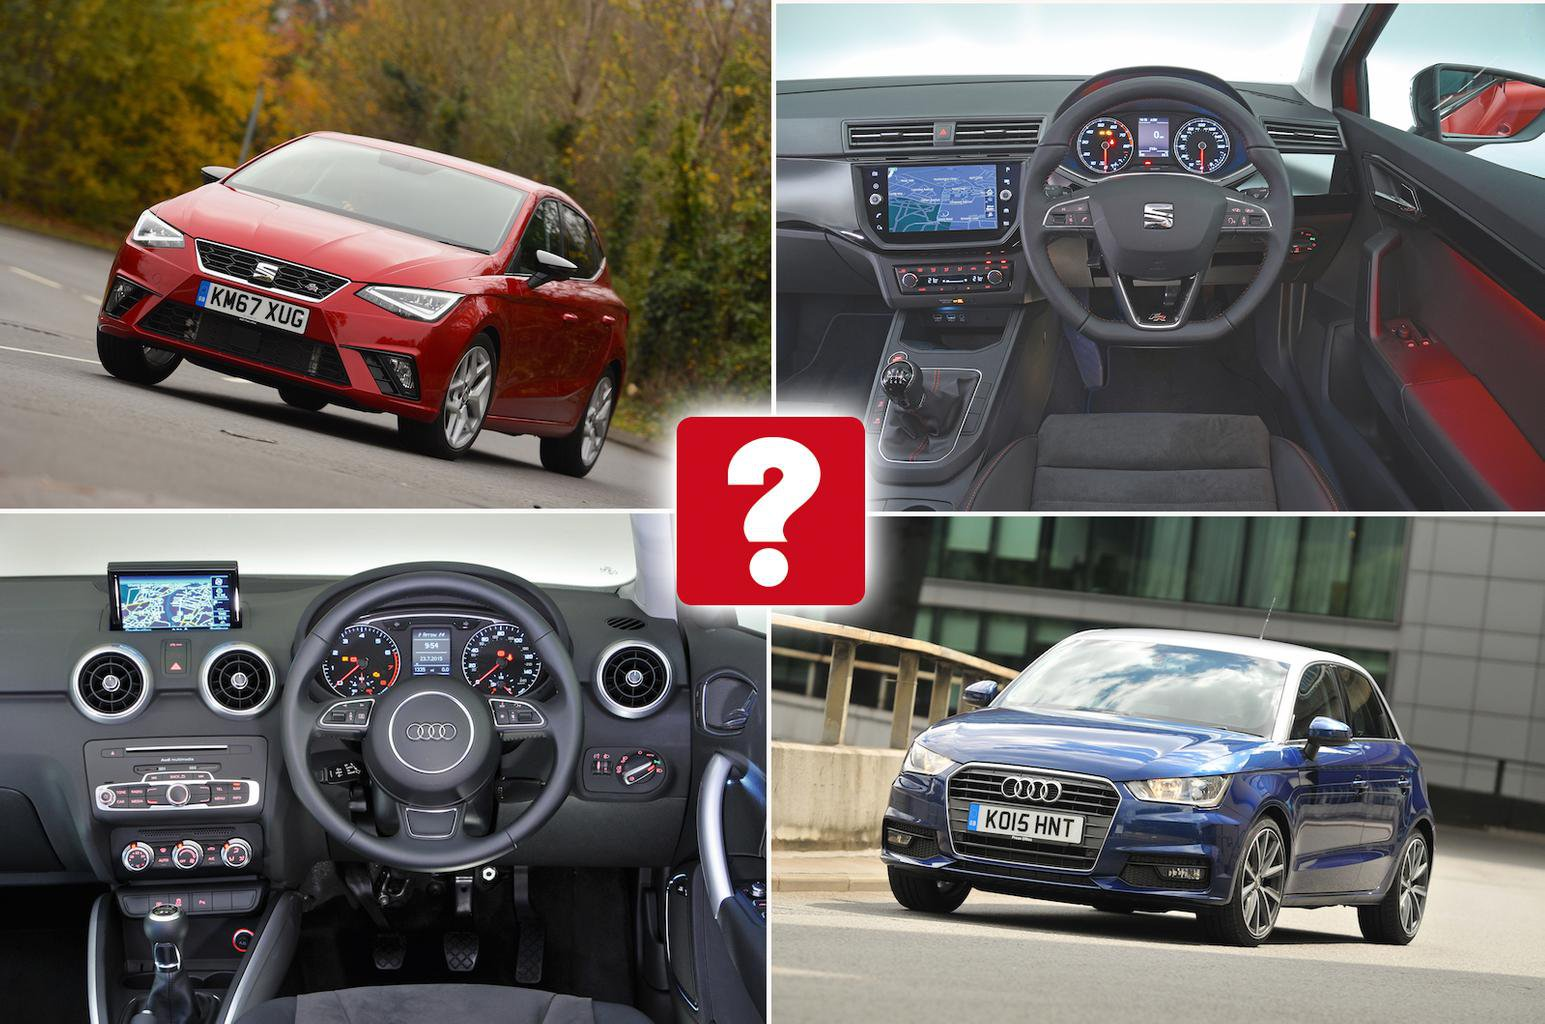 New Seat Ibiza vs used Audi A1 Sportback: which is best?